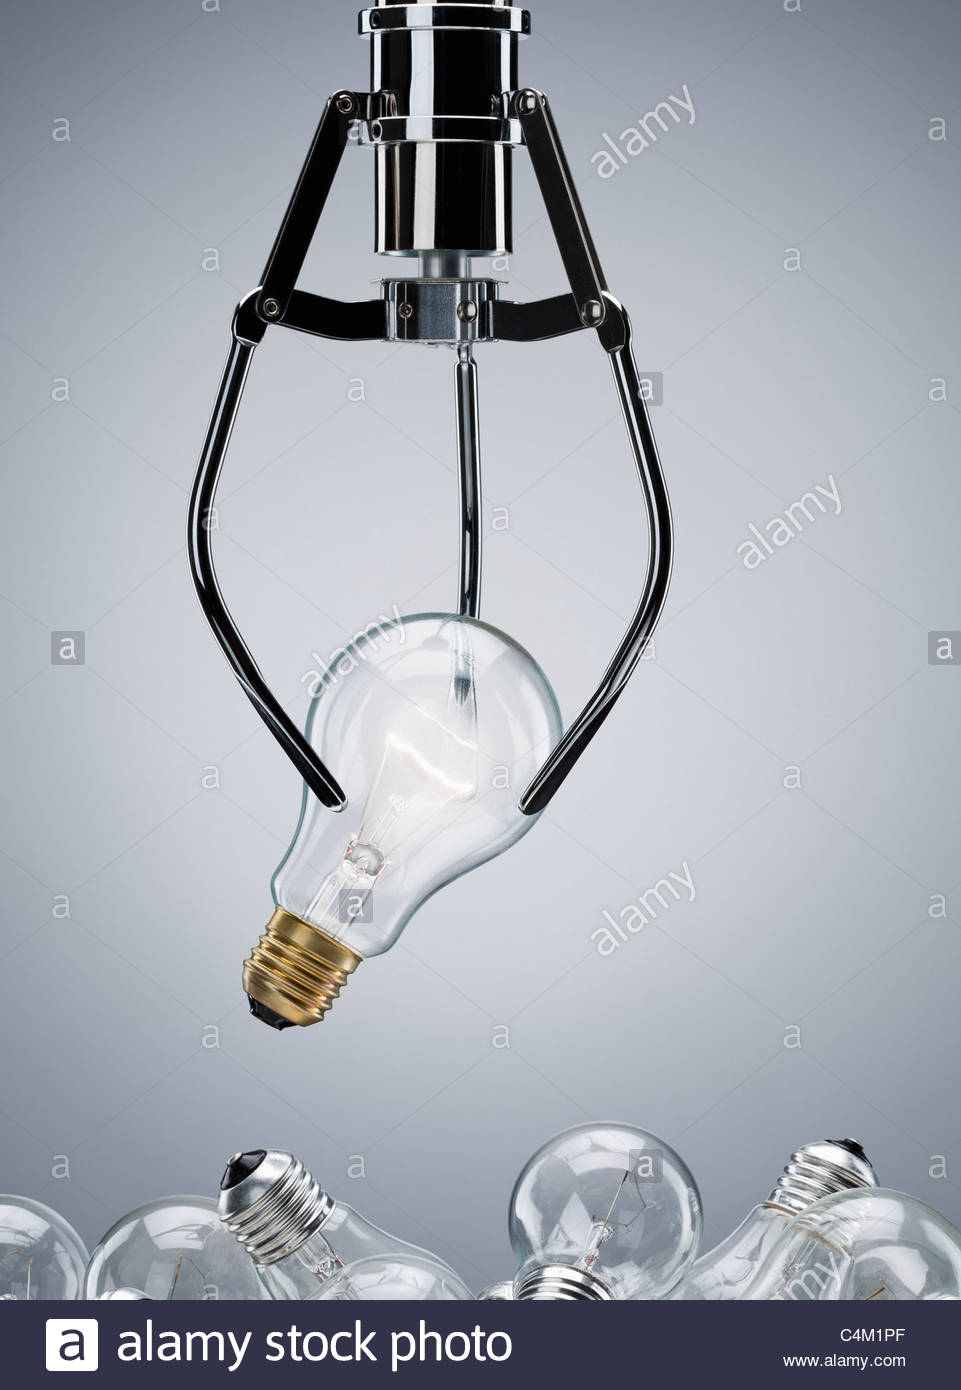 Mechanical claw lifting light bulb - Stock Image